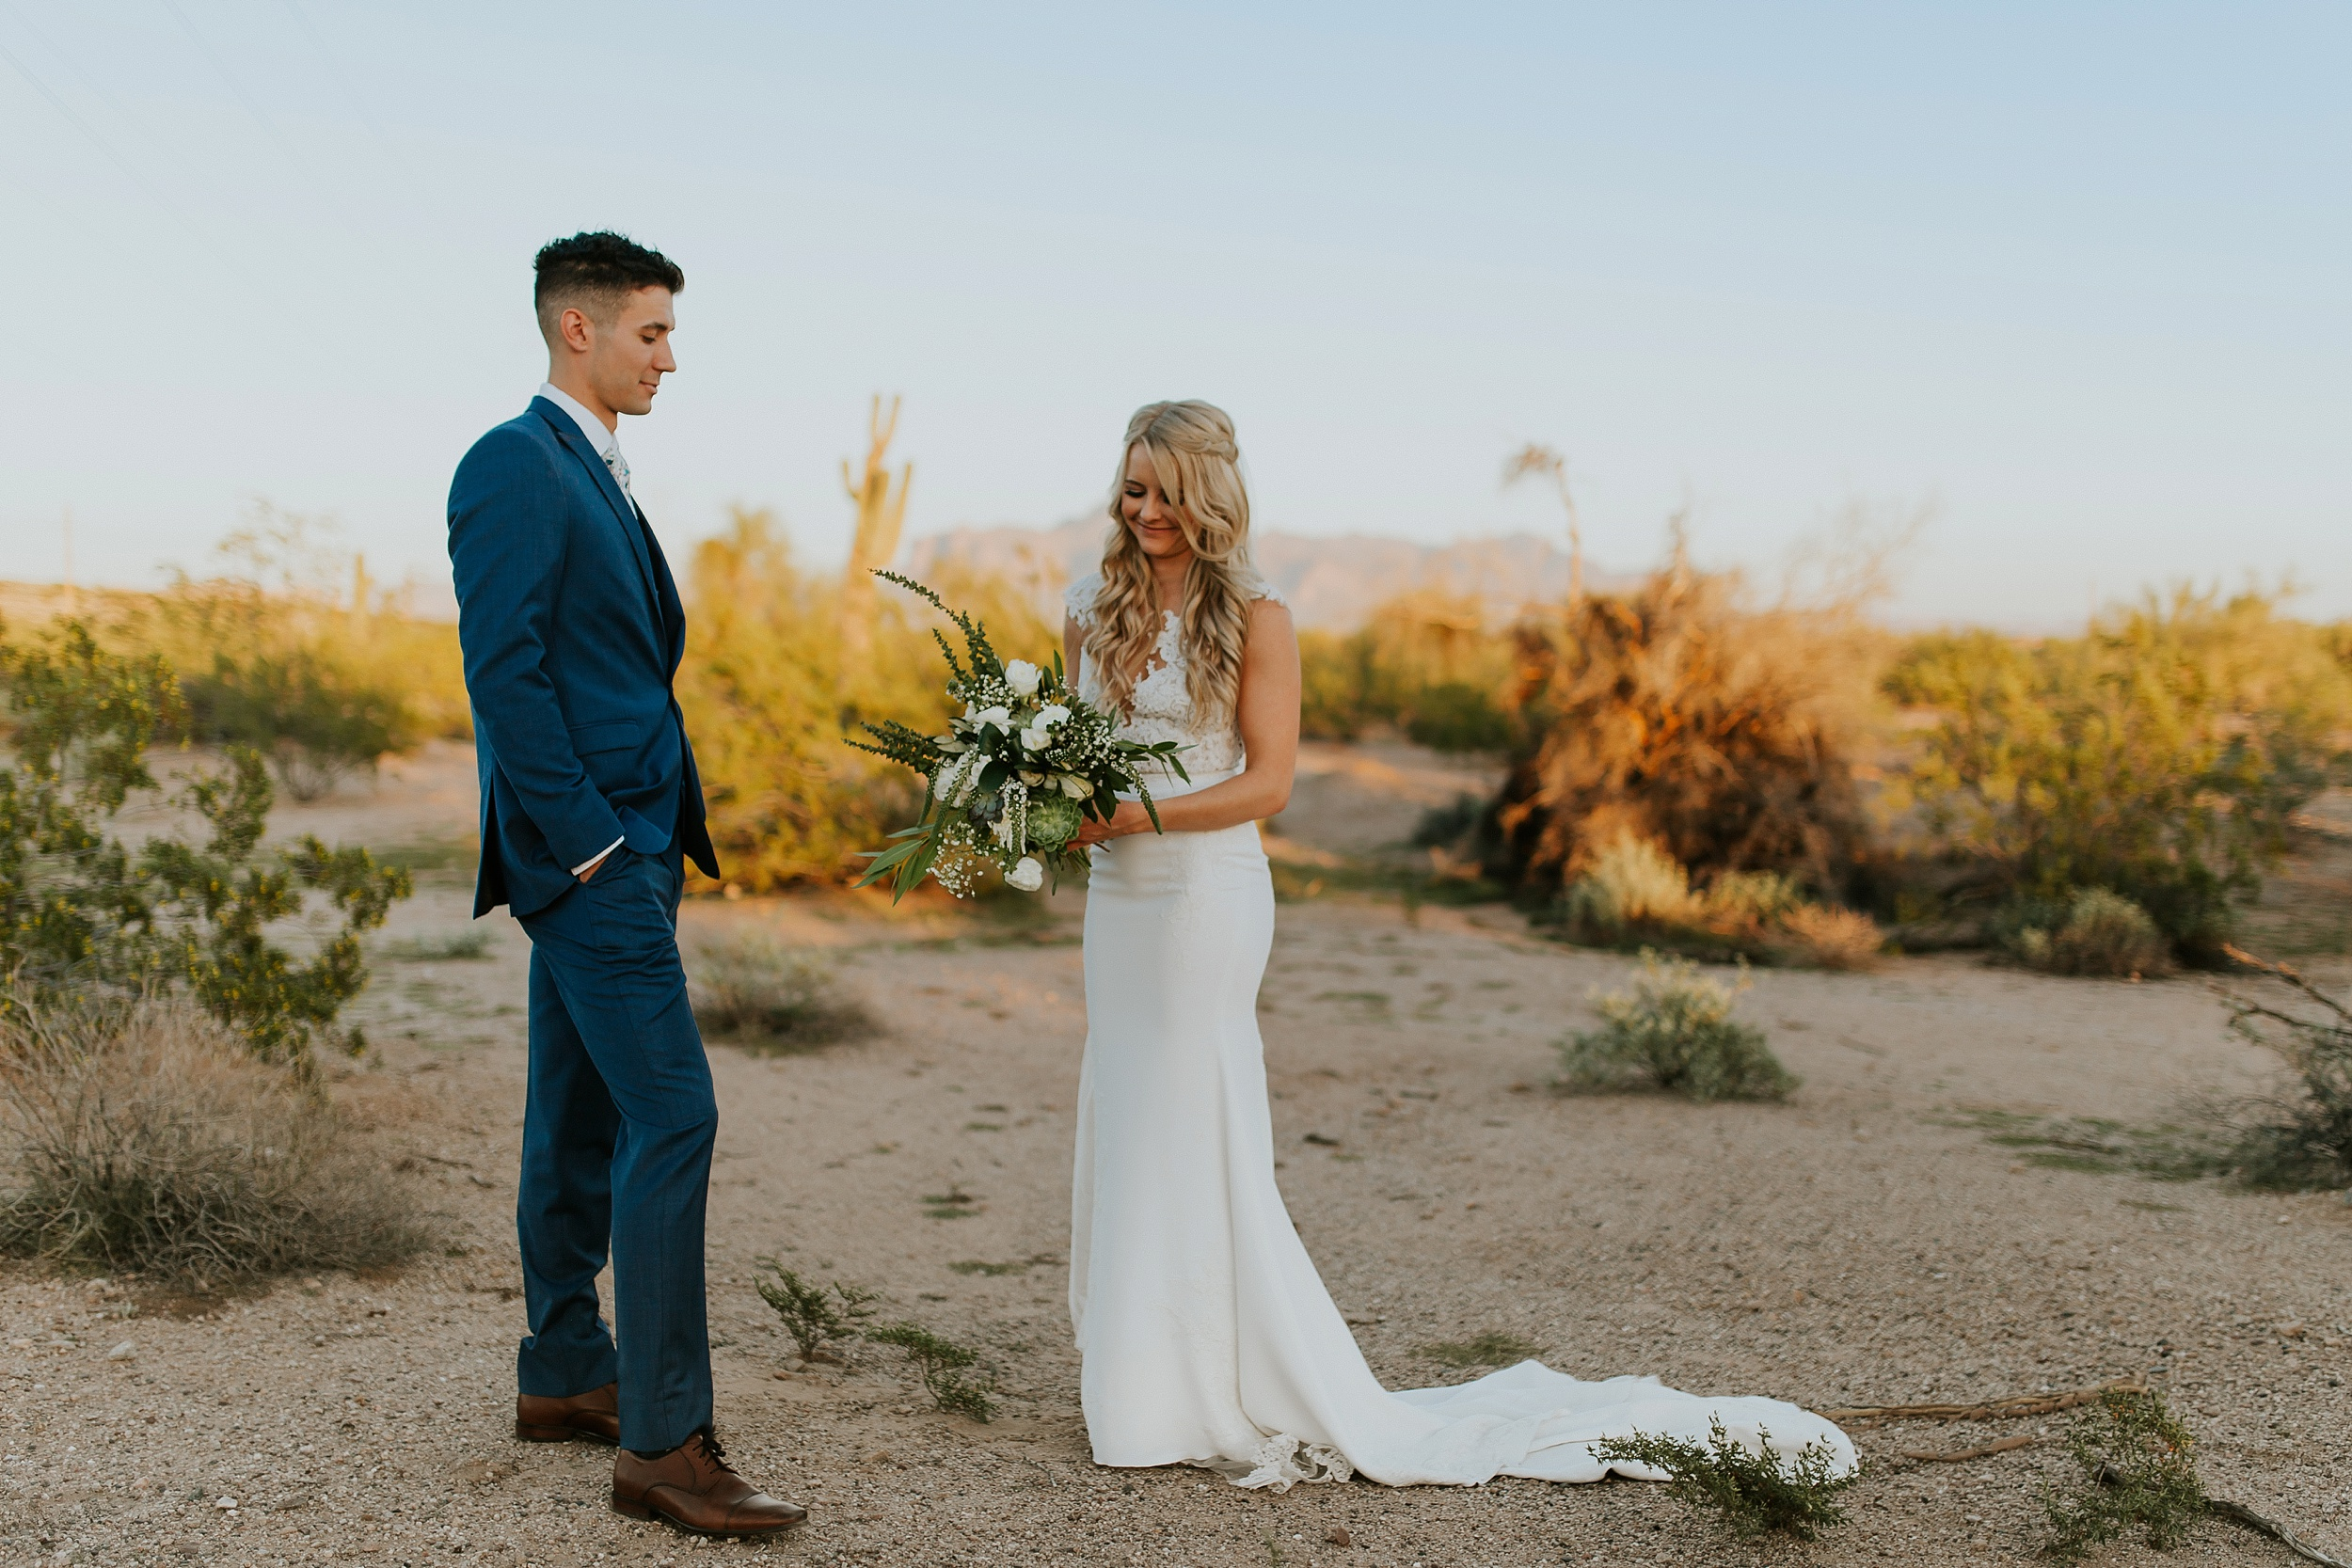 Meg+Bubba_Wedding_Bride+Groom_Portraits_Arizona-151.jpg